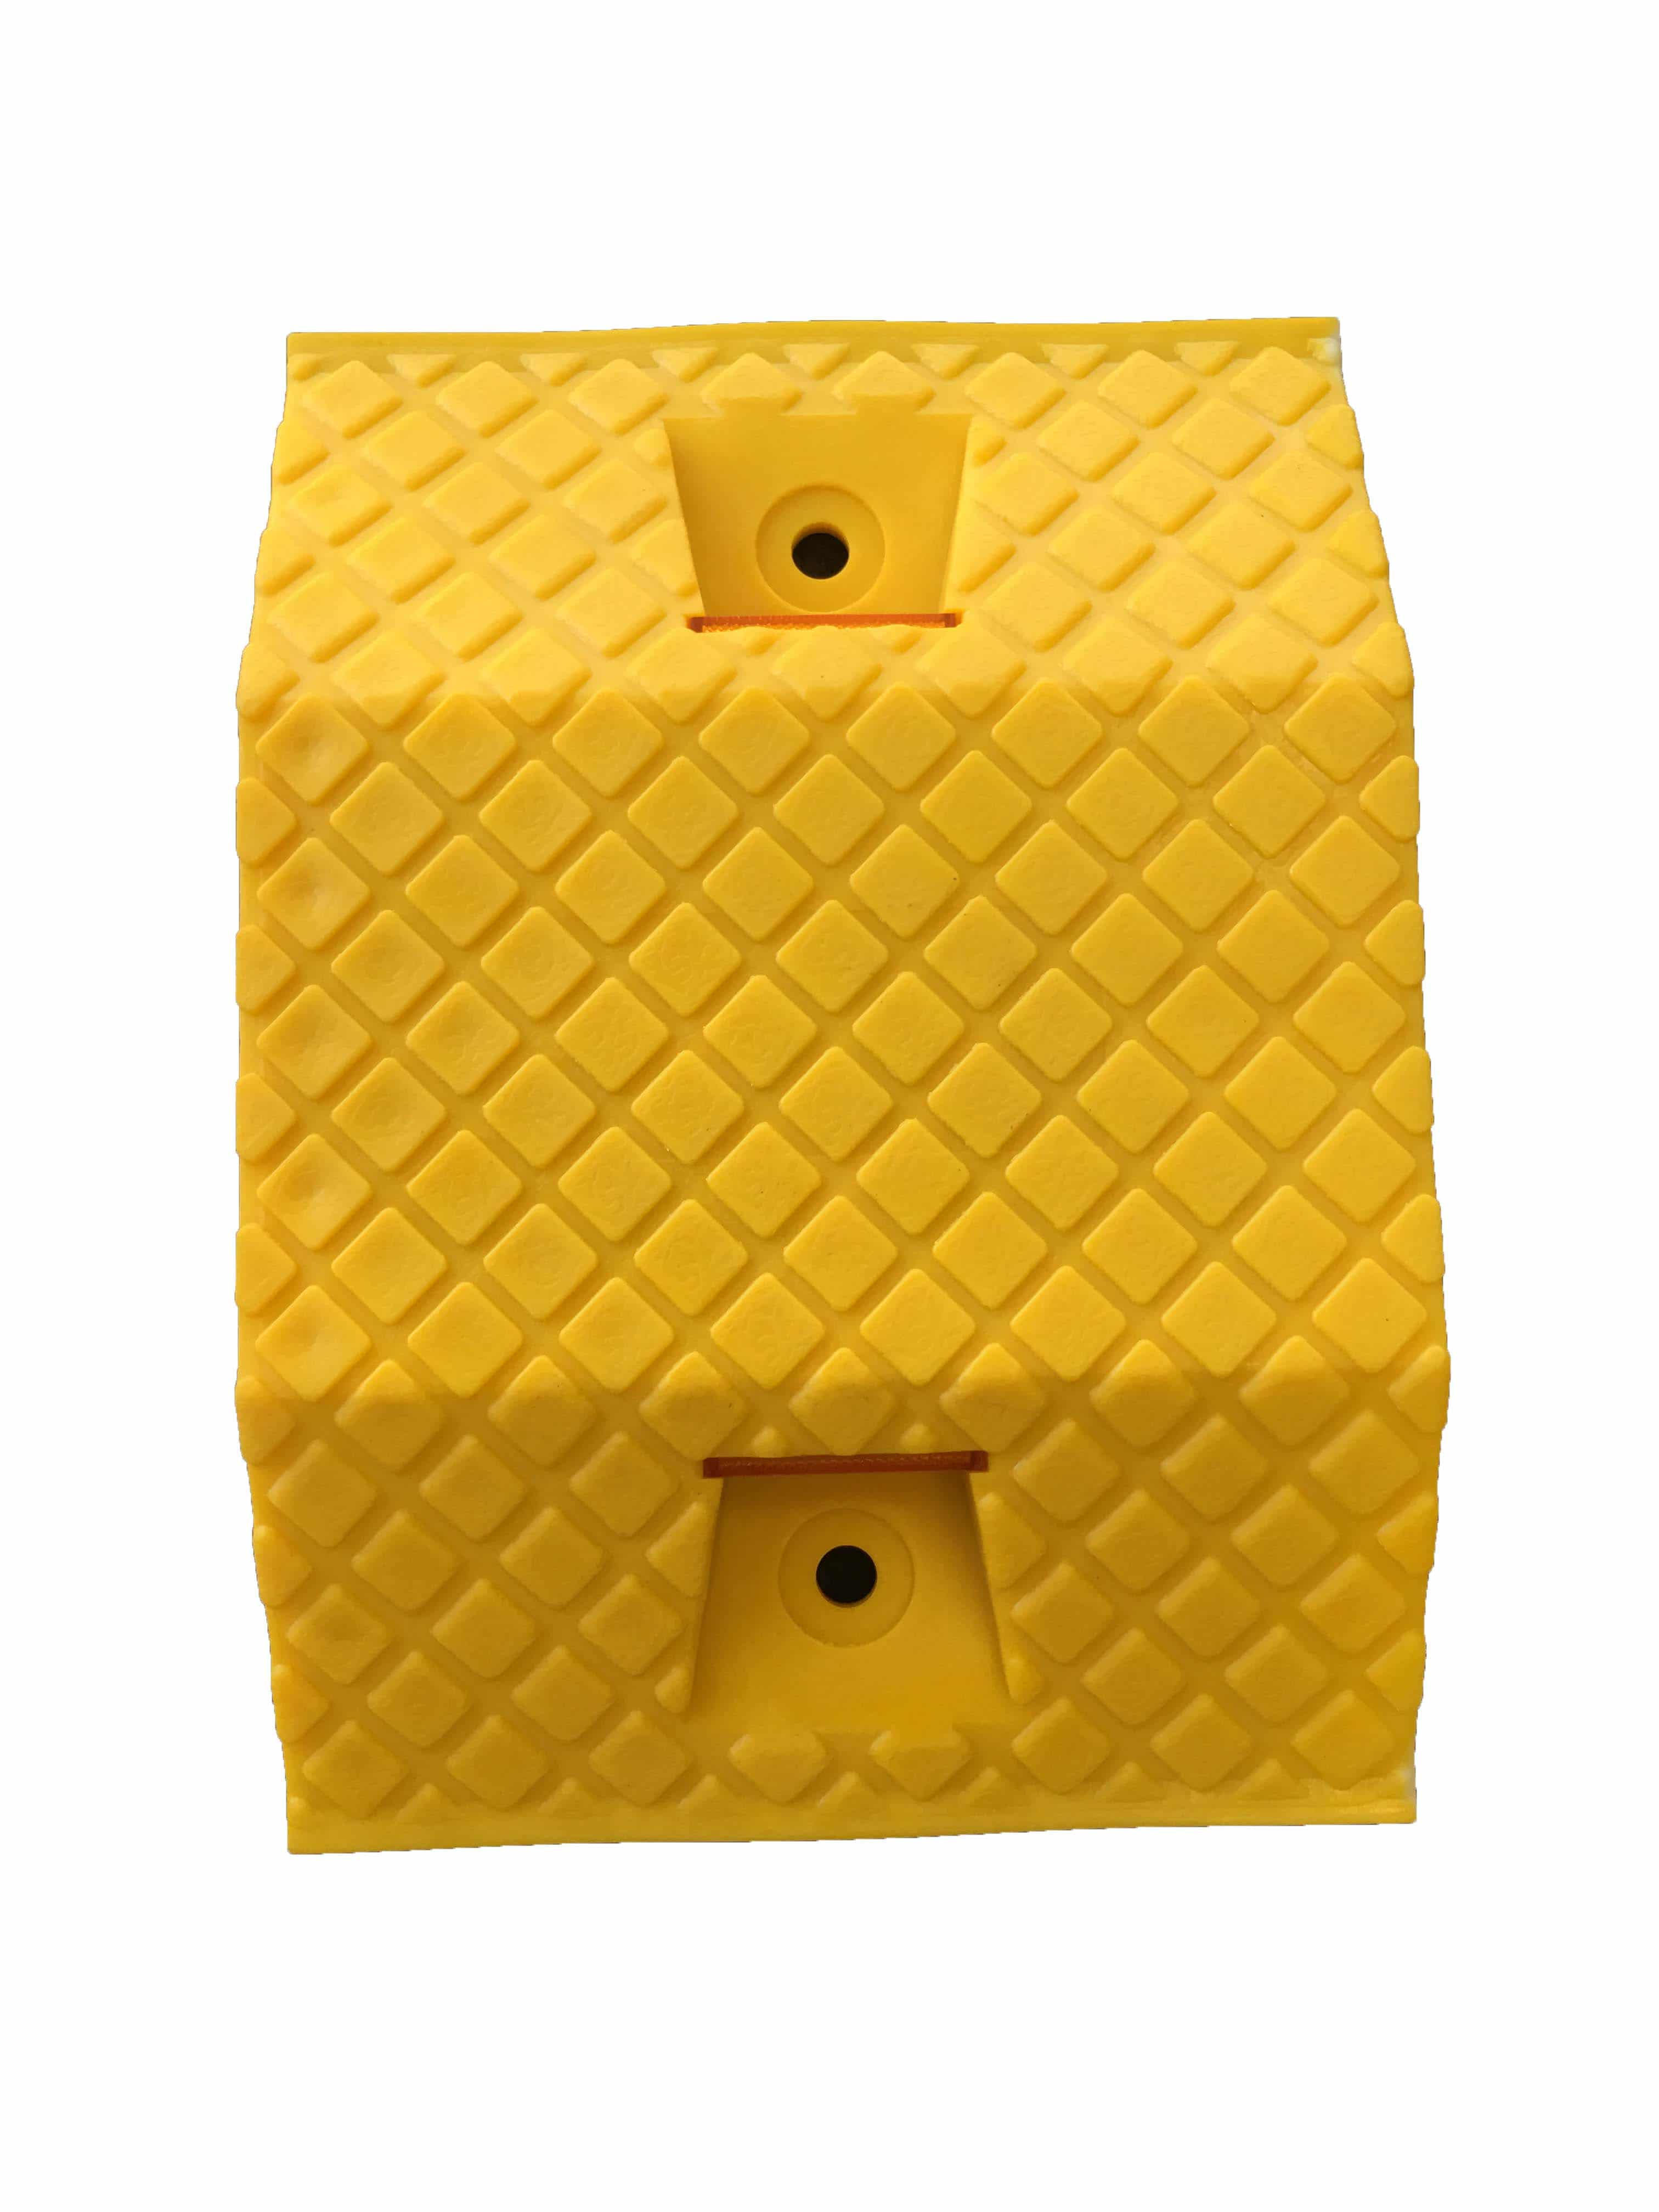 350mm Plastic Speed Hump Middle Yellow The Bollard Shop